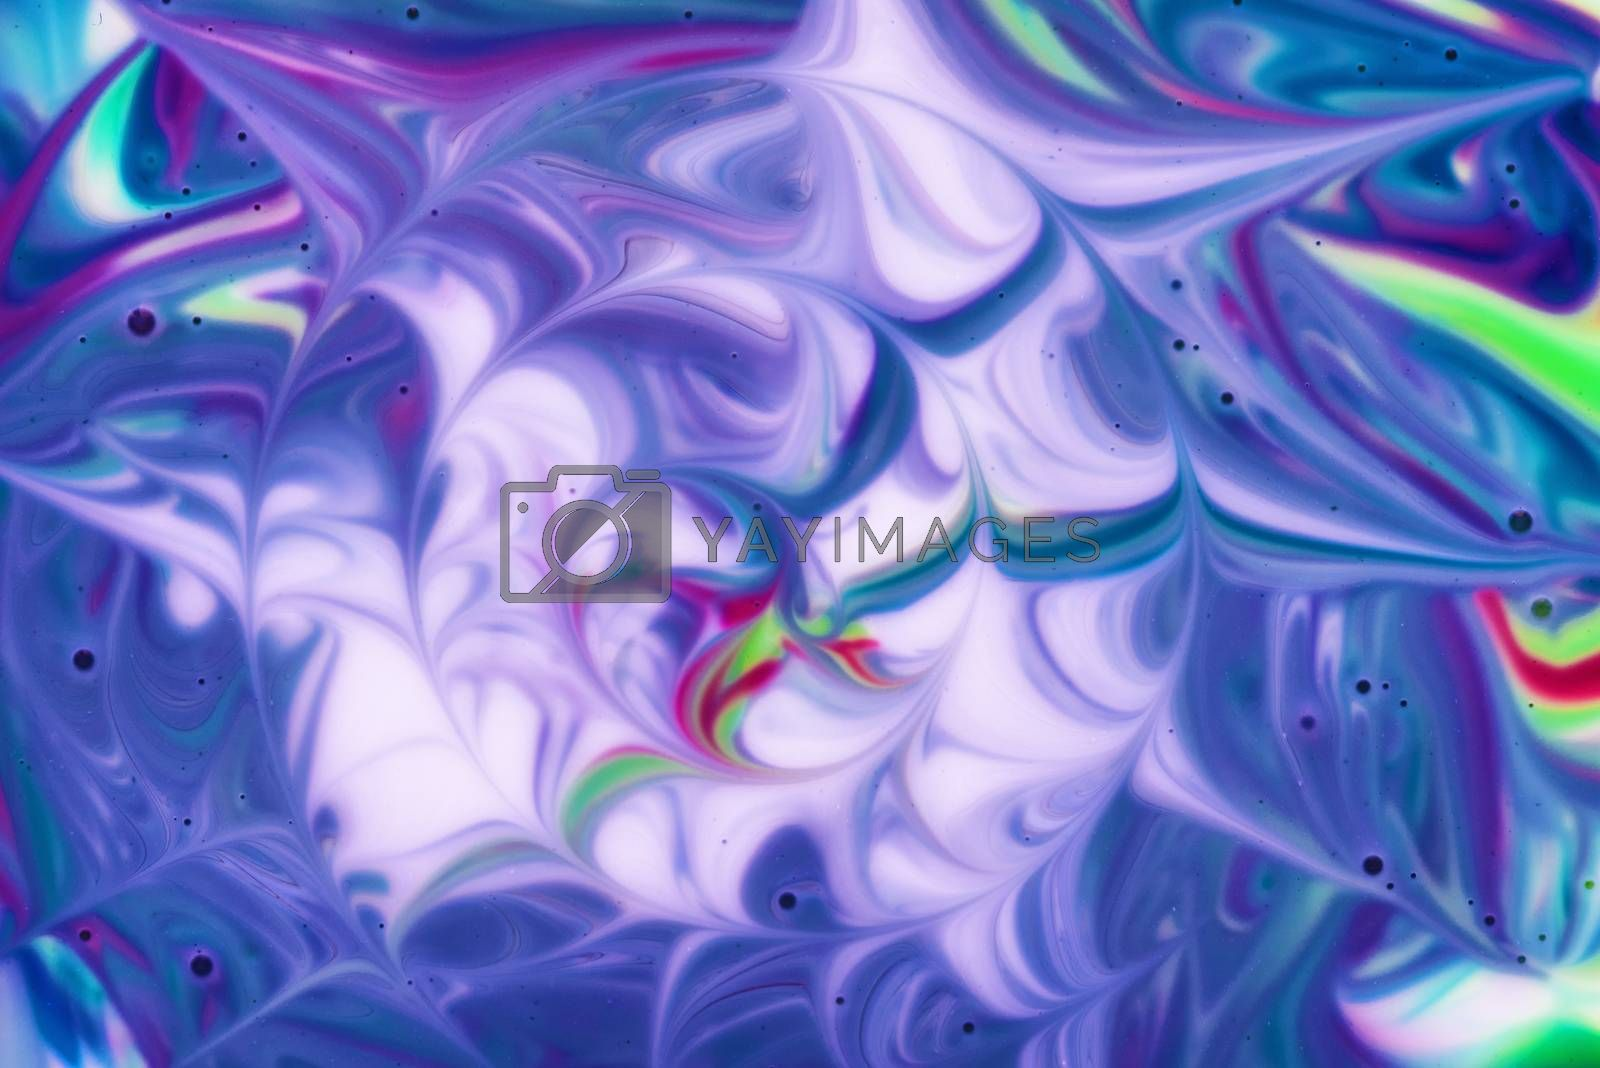 Abstract fluid pattern. Colorful painted background. Decorative marble texture.